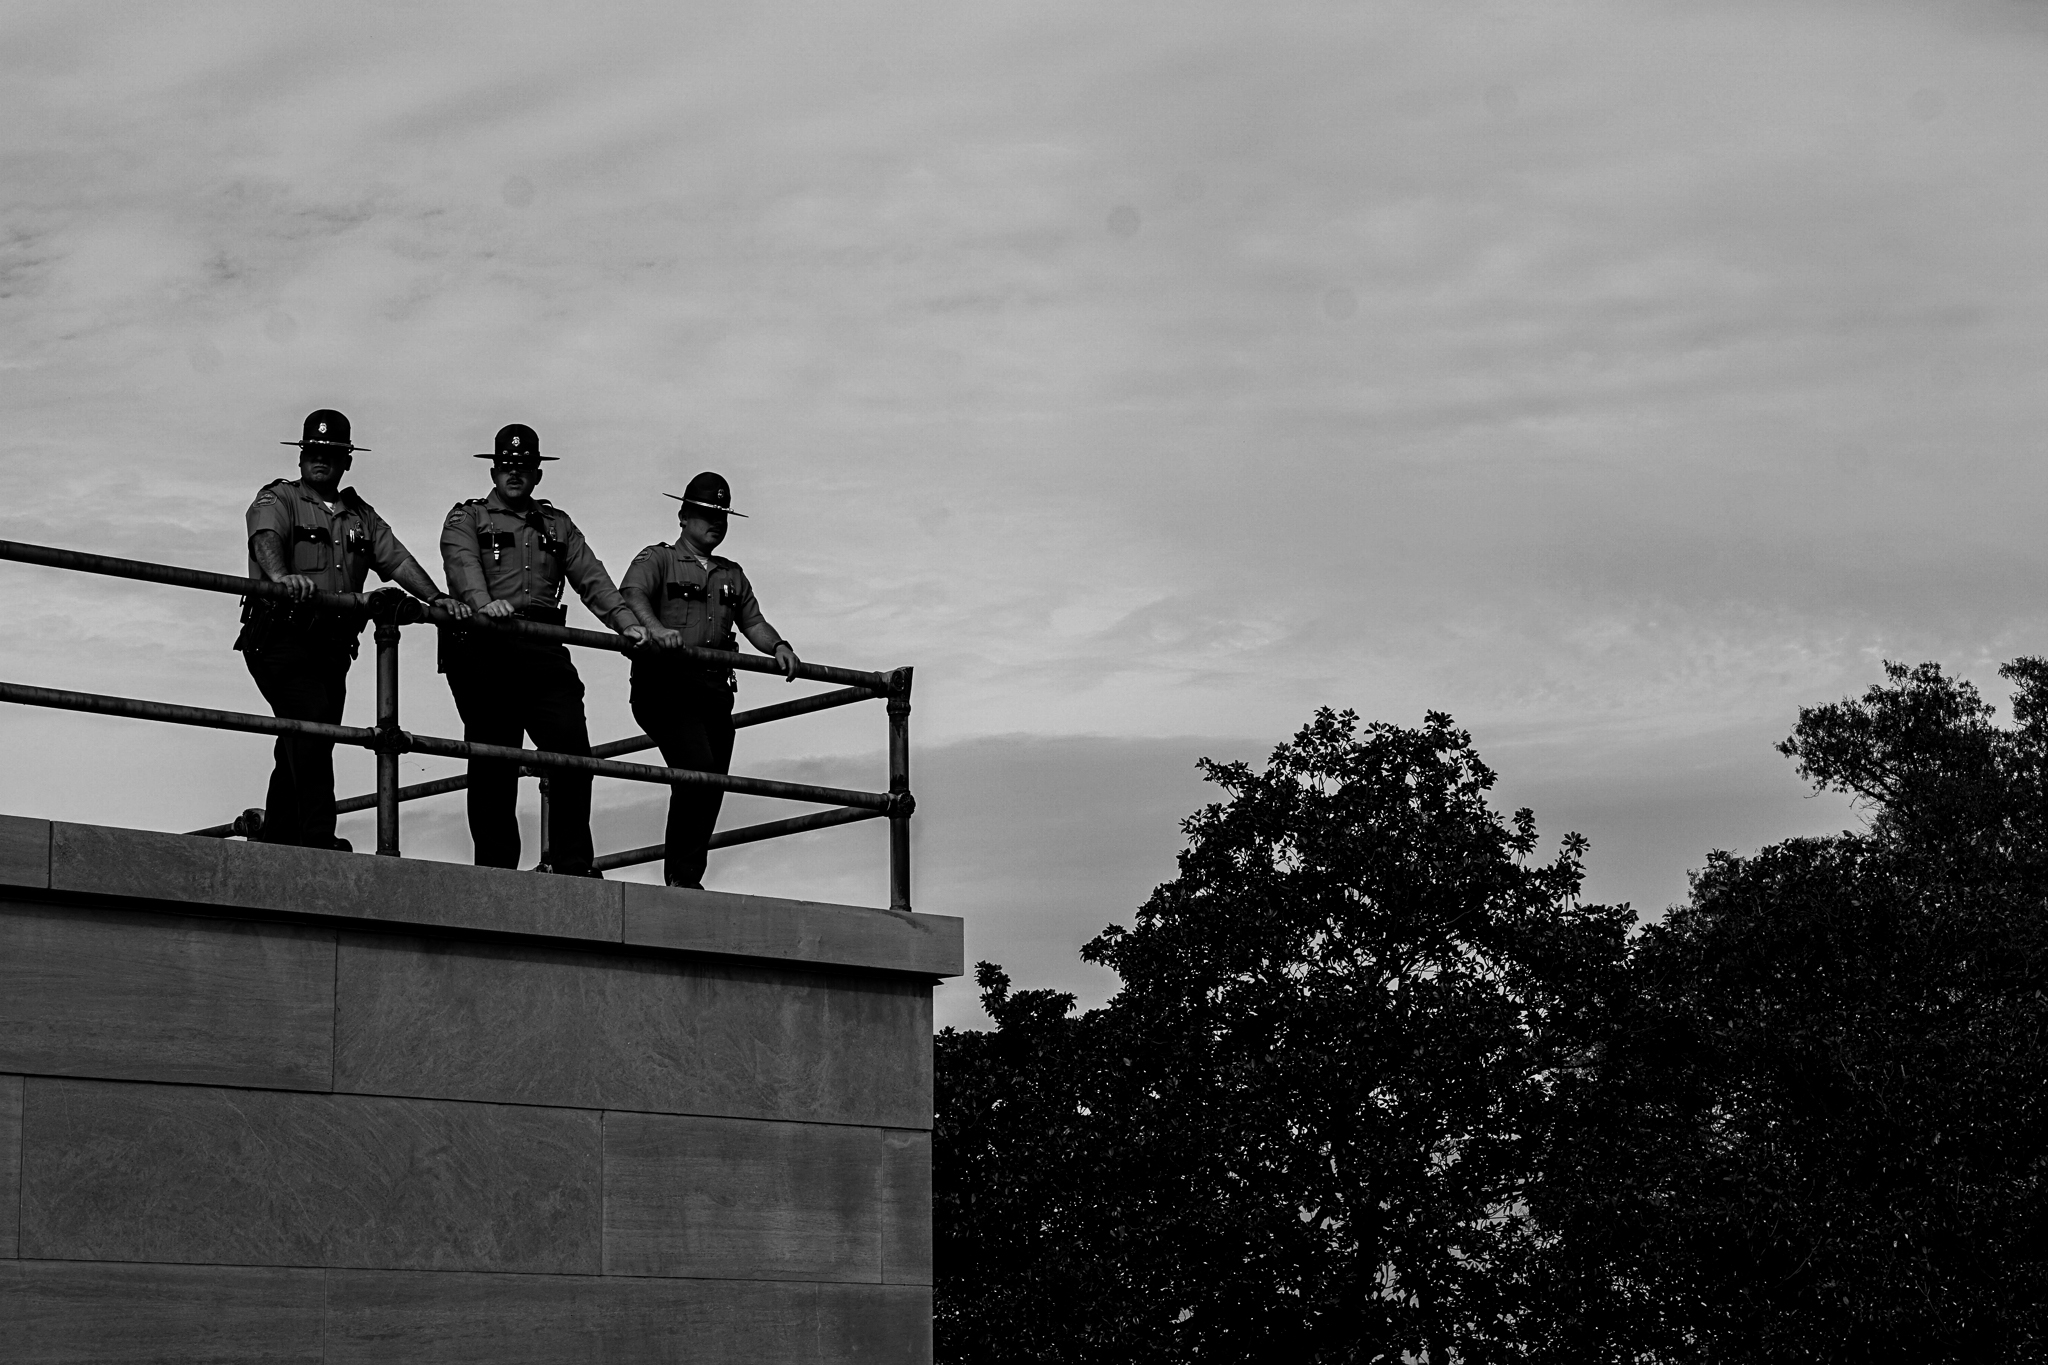 Three Tennessee State Troopers at the capitol look over the crowd below. (Photo: Matt Bastin)